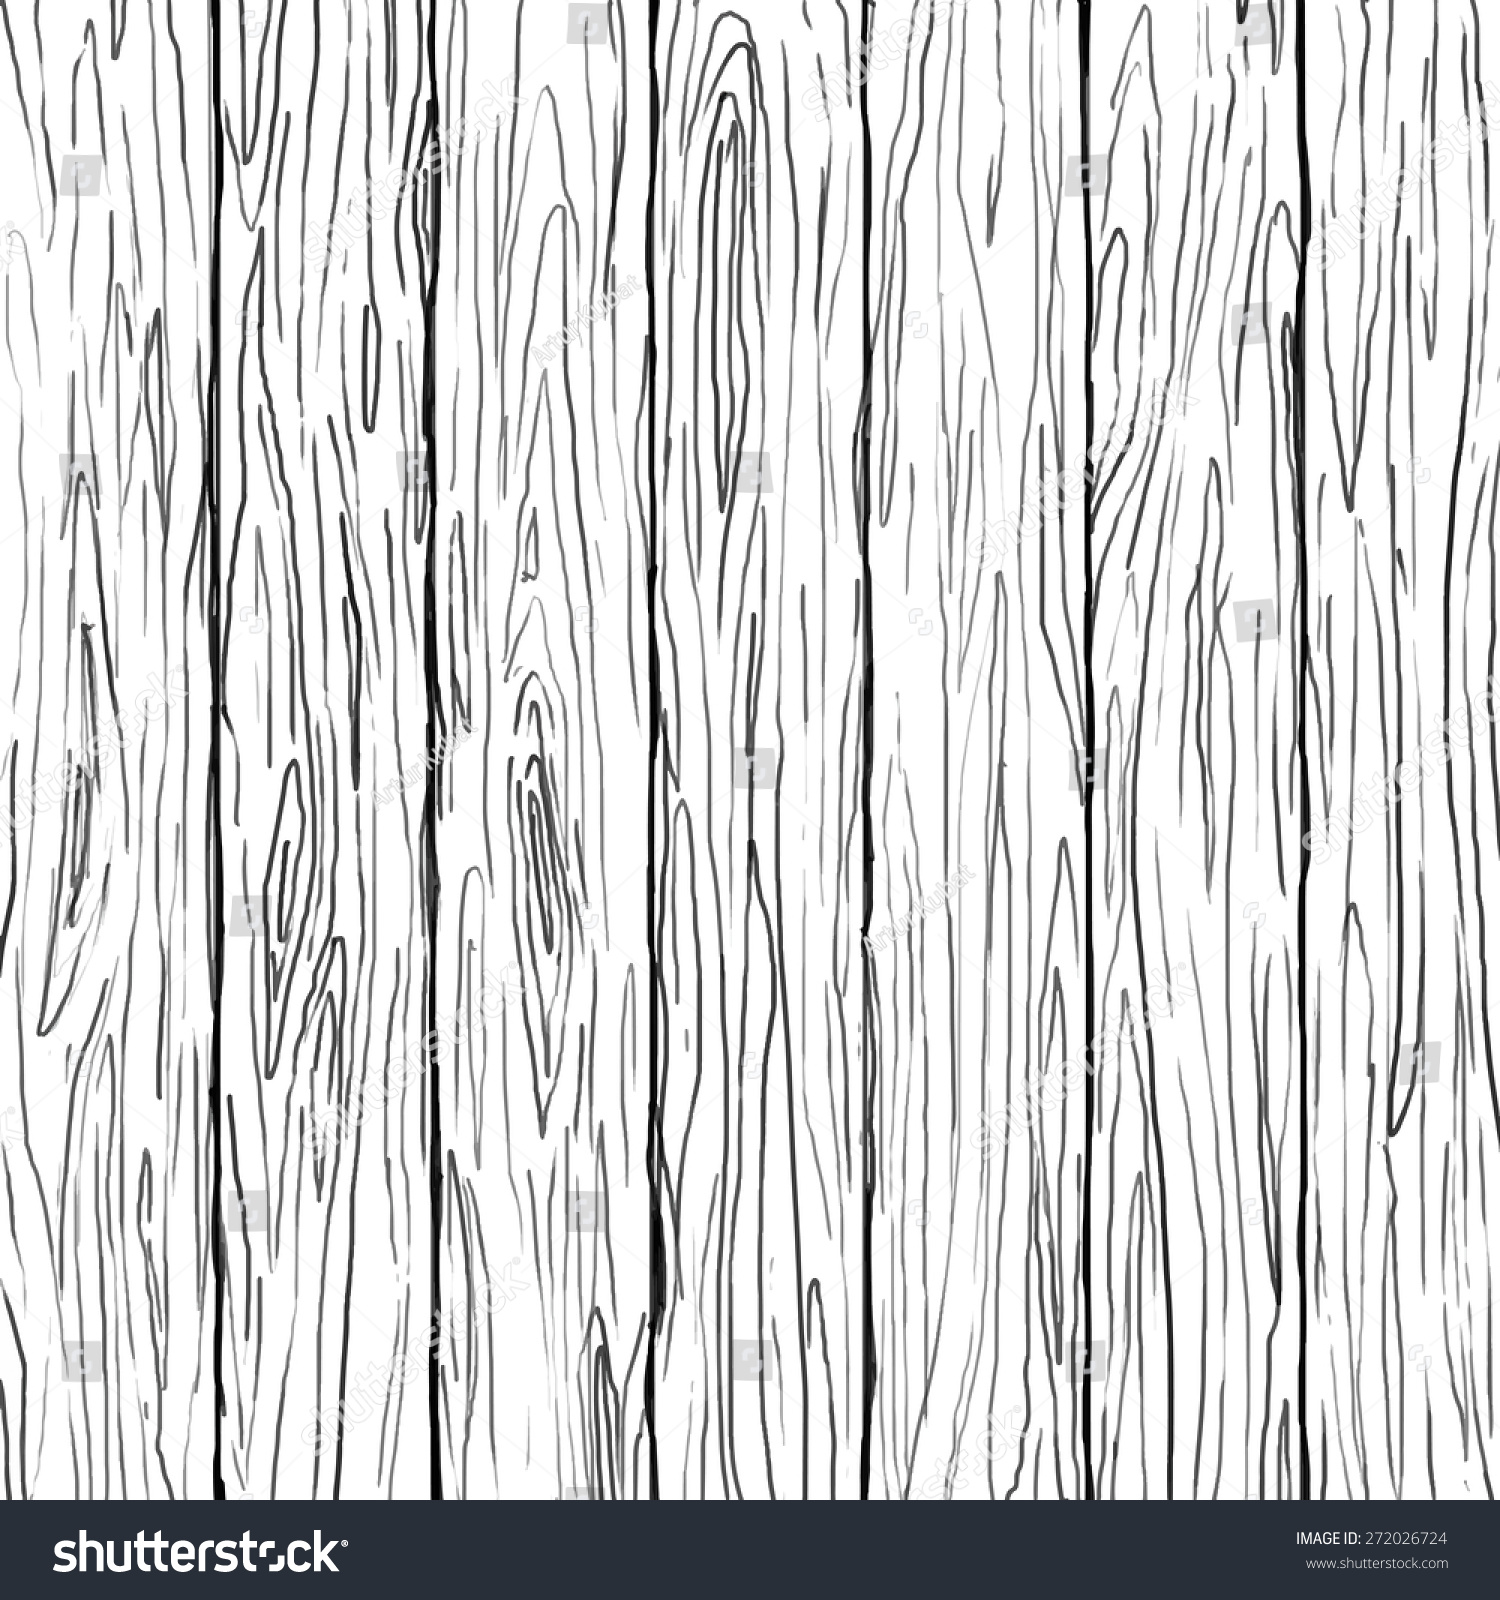 Line Art Wood Grain : Royalty free vector wood texture plank drawing